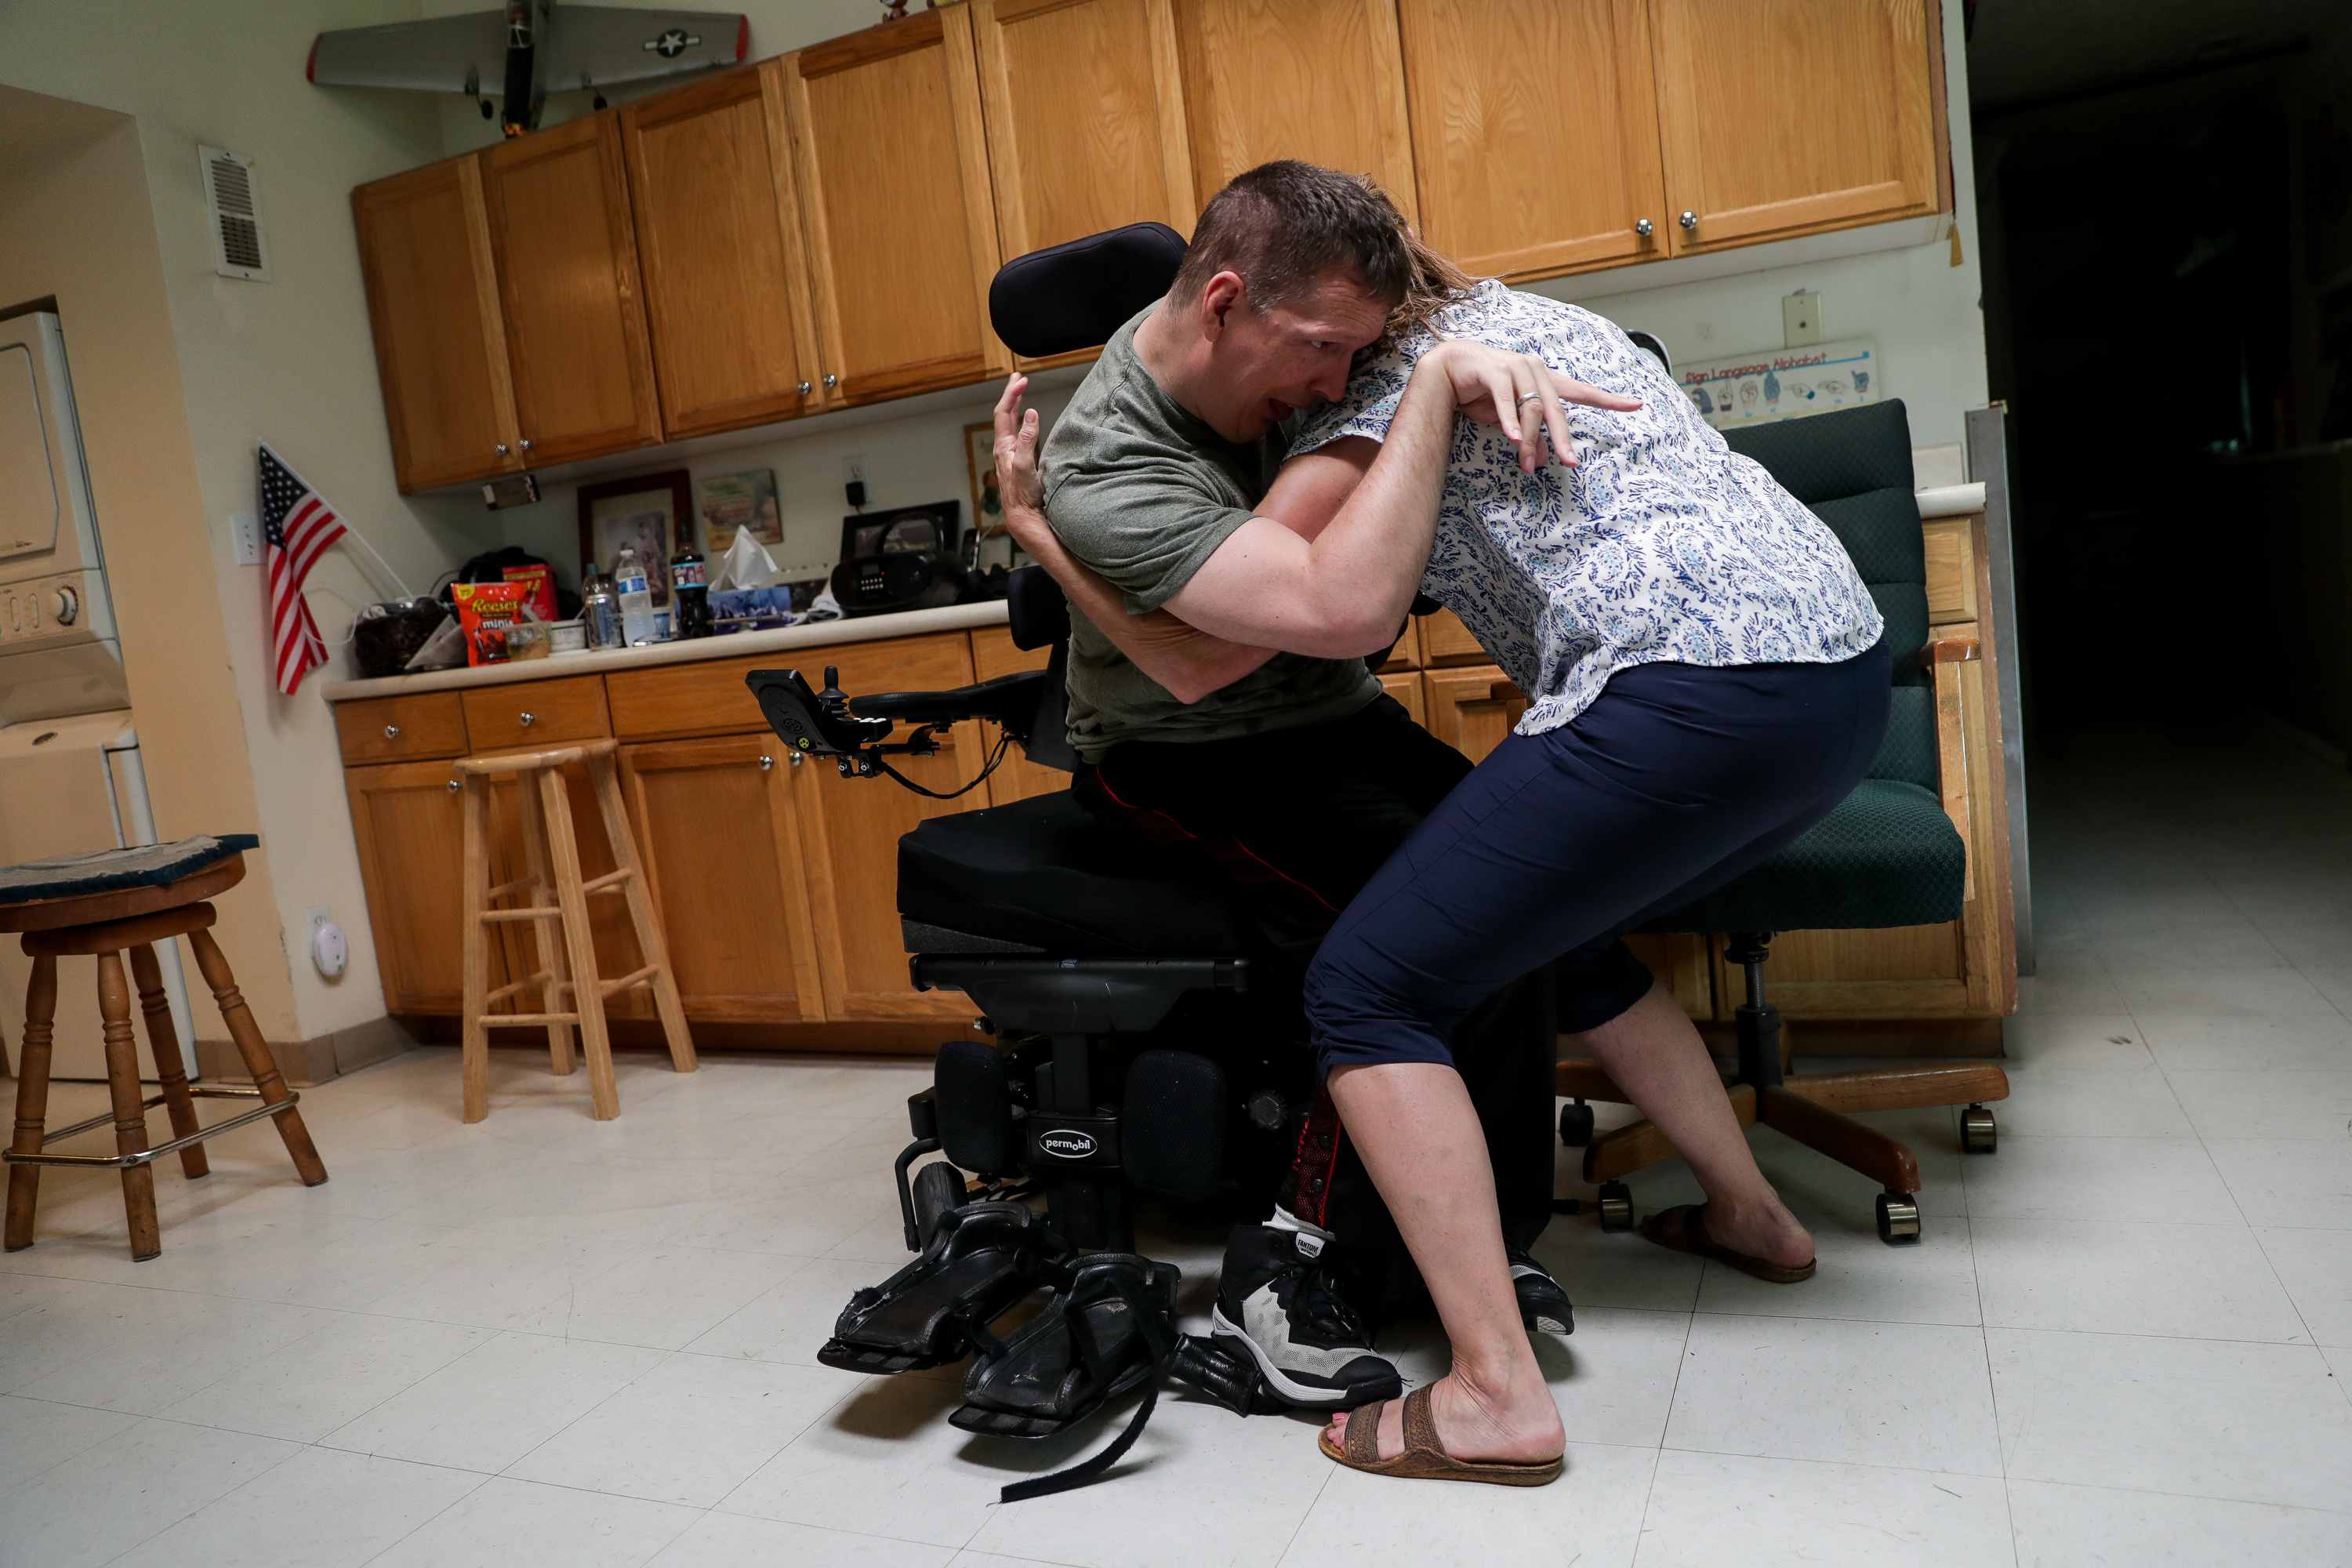 Orin Voorheis is helped up out of his motorized wheelchair by his caregiver Wendy Tobey at his home in Pleasant Grove, Utah, on Tuesday, July 10, 2018.